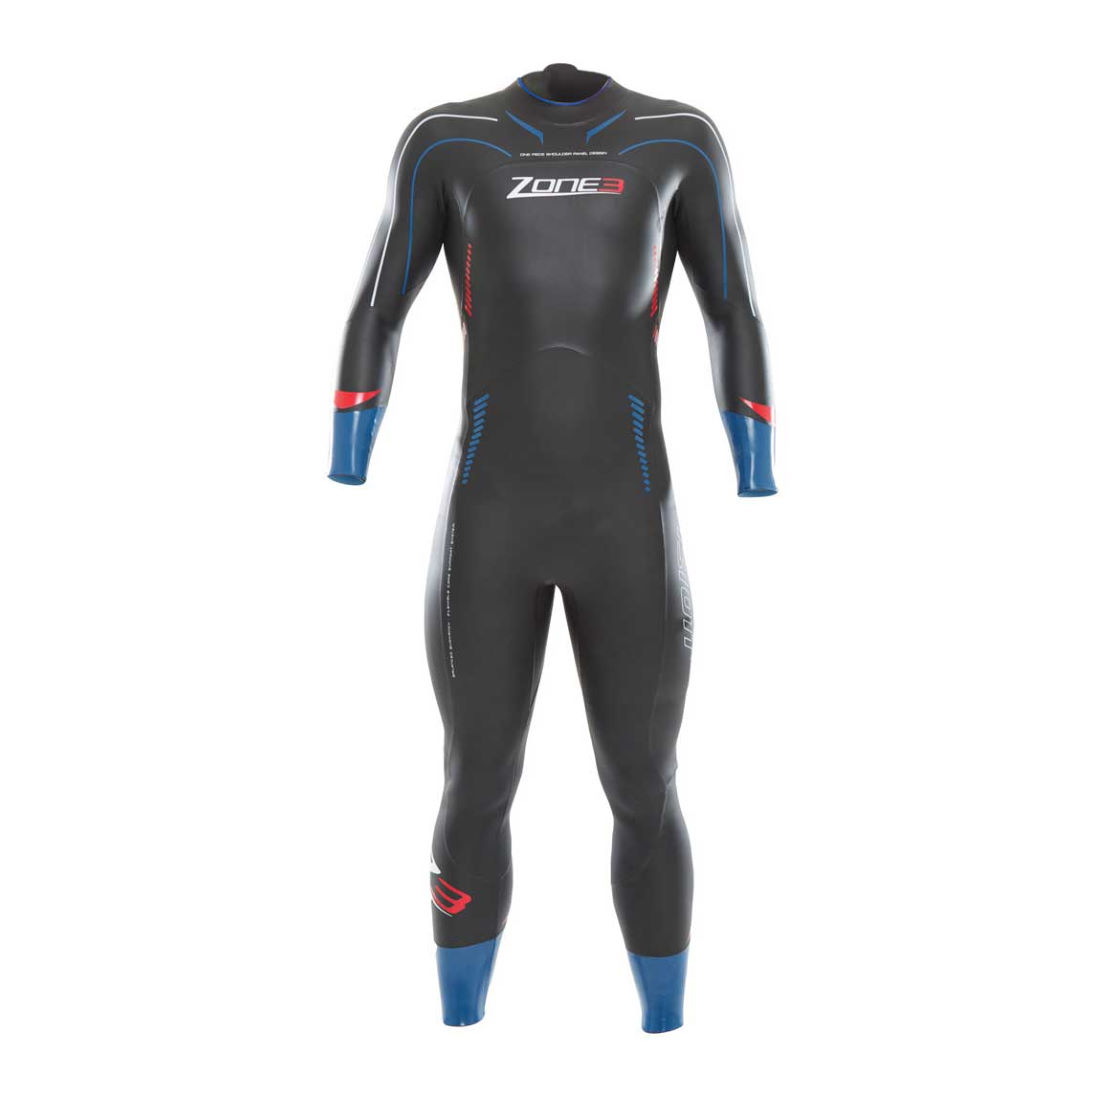 Zone-3-Vision-Wetsuit-Wetsuits-Black-Blue-Red-SS14-Z14018.jpg?w=1100&h ...